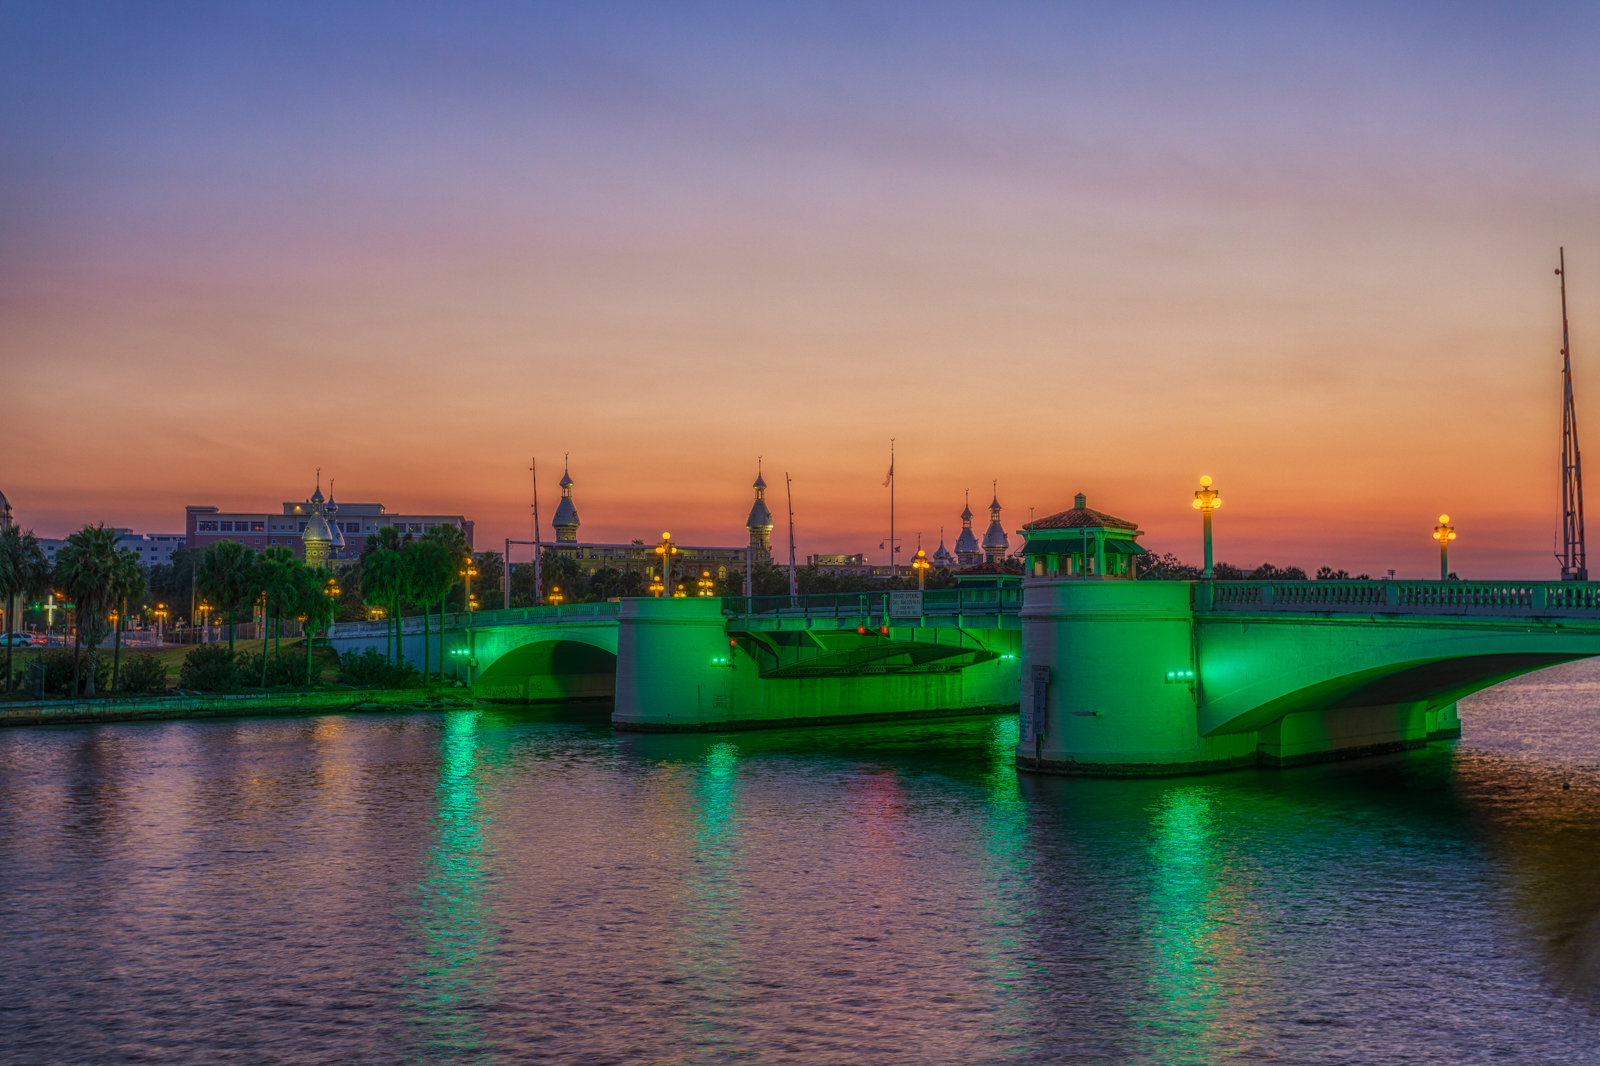 Green Kennedy Bridge and the University of Tampa at Sunset Merge